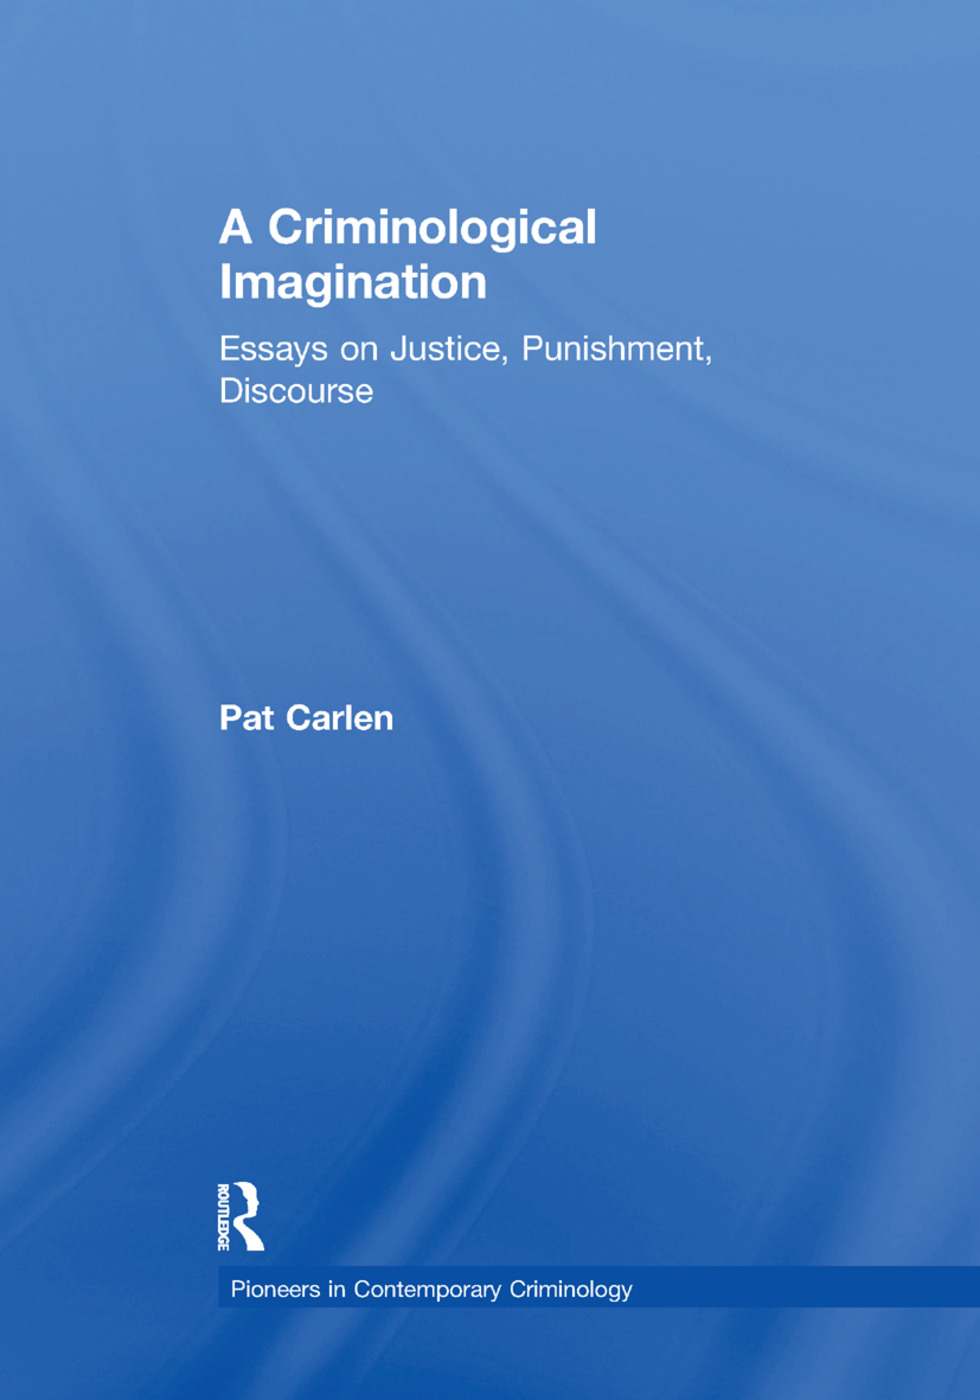 A Criminological Imagination: Essays on Justice, Punishment, Discourse book cover